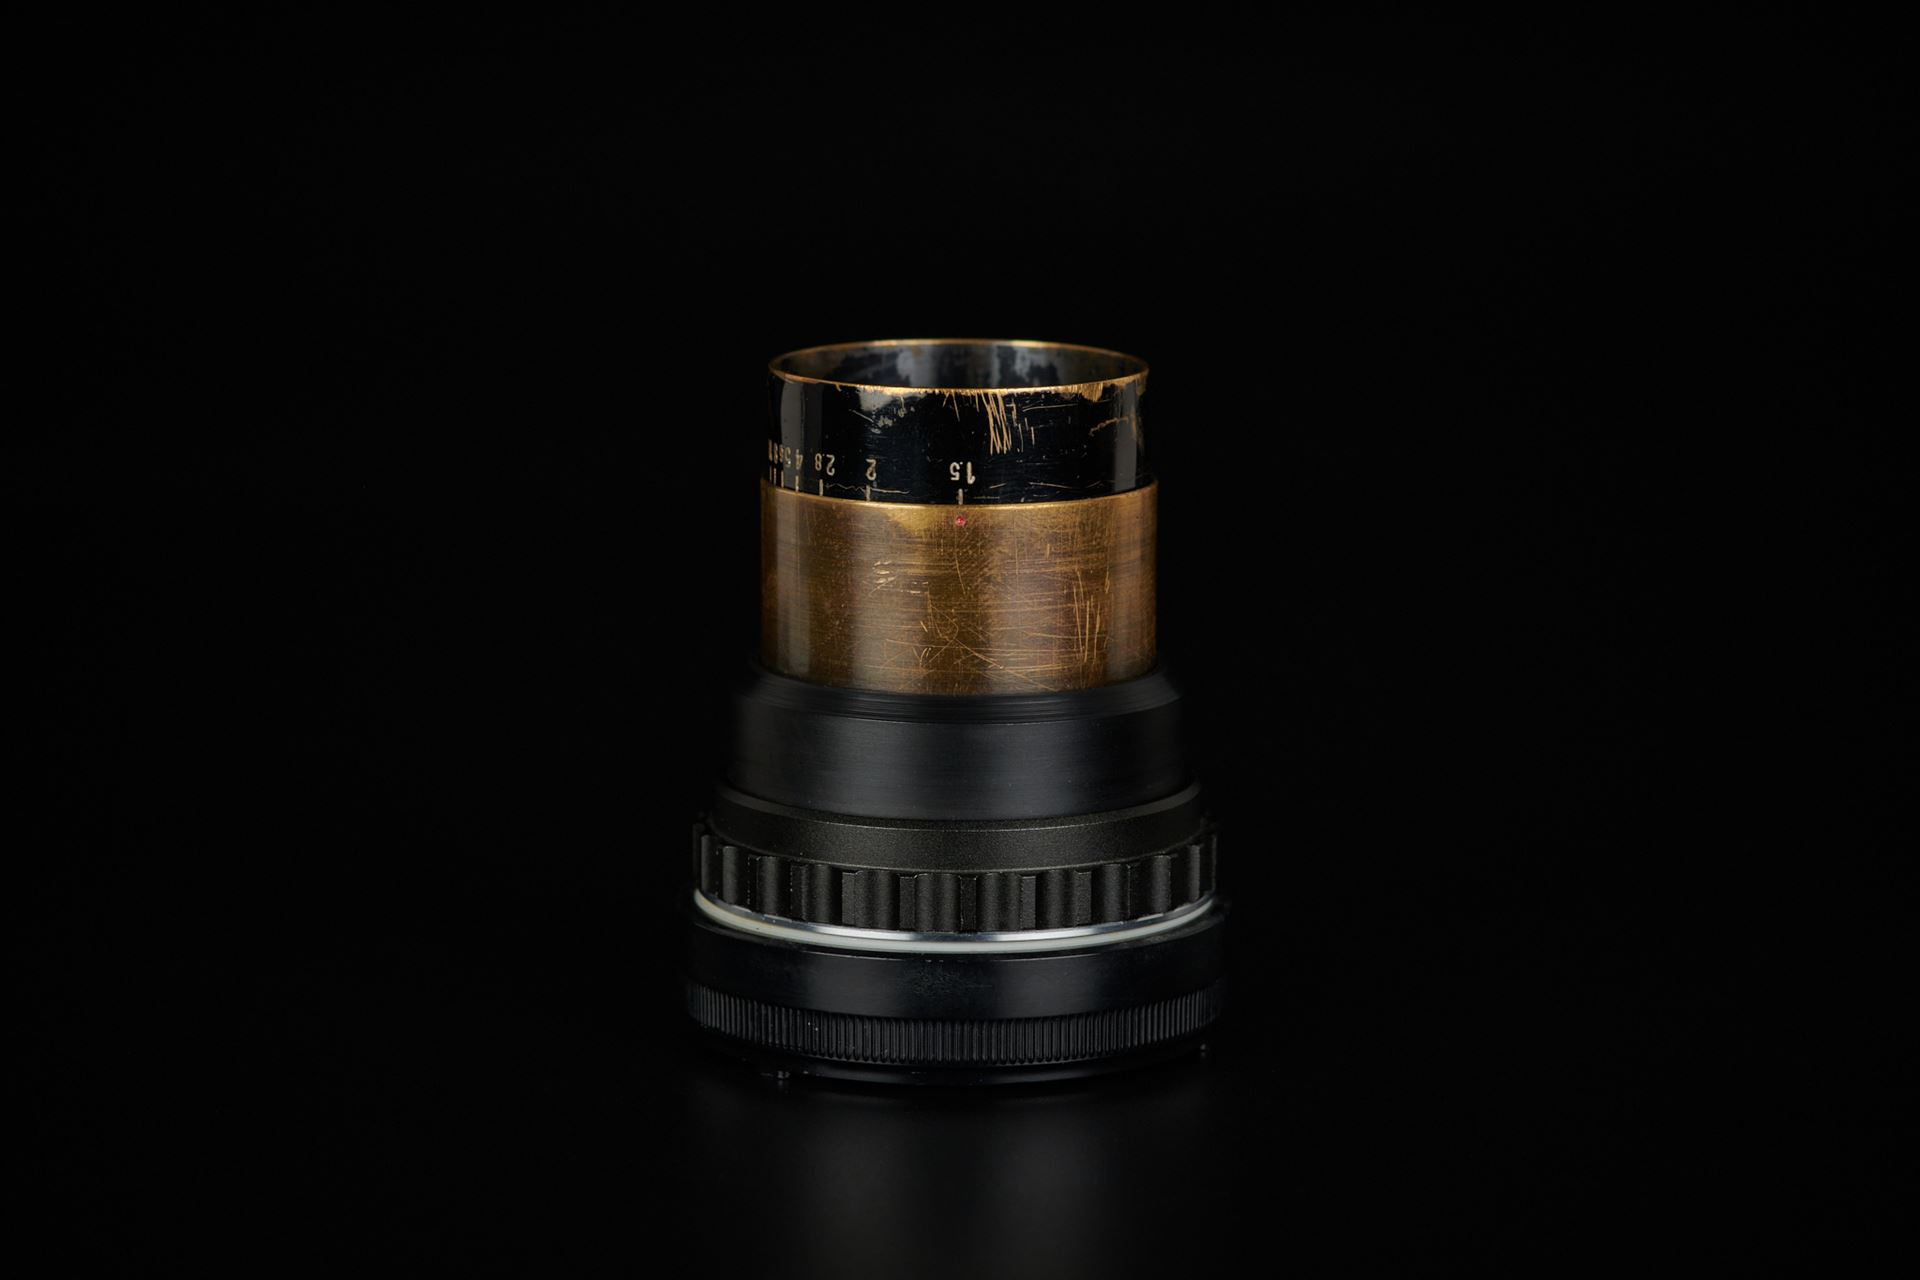 Picture of hugo meyer kino-plasmat 4.2cm f/1.5 modified for leica m